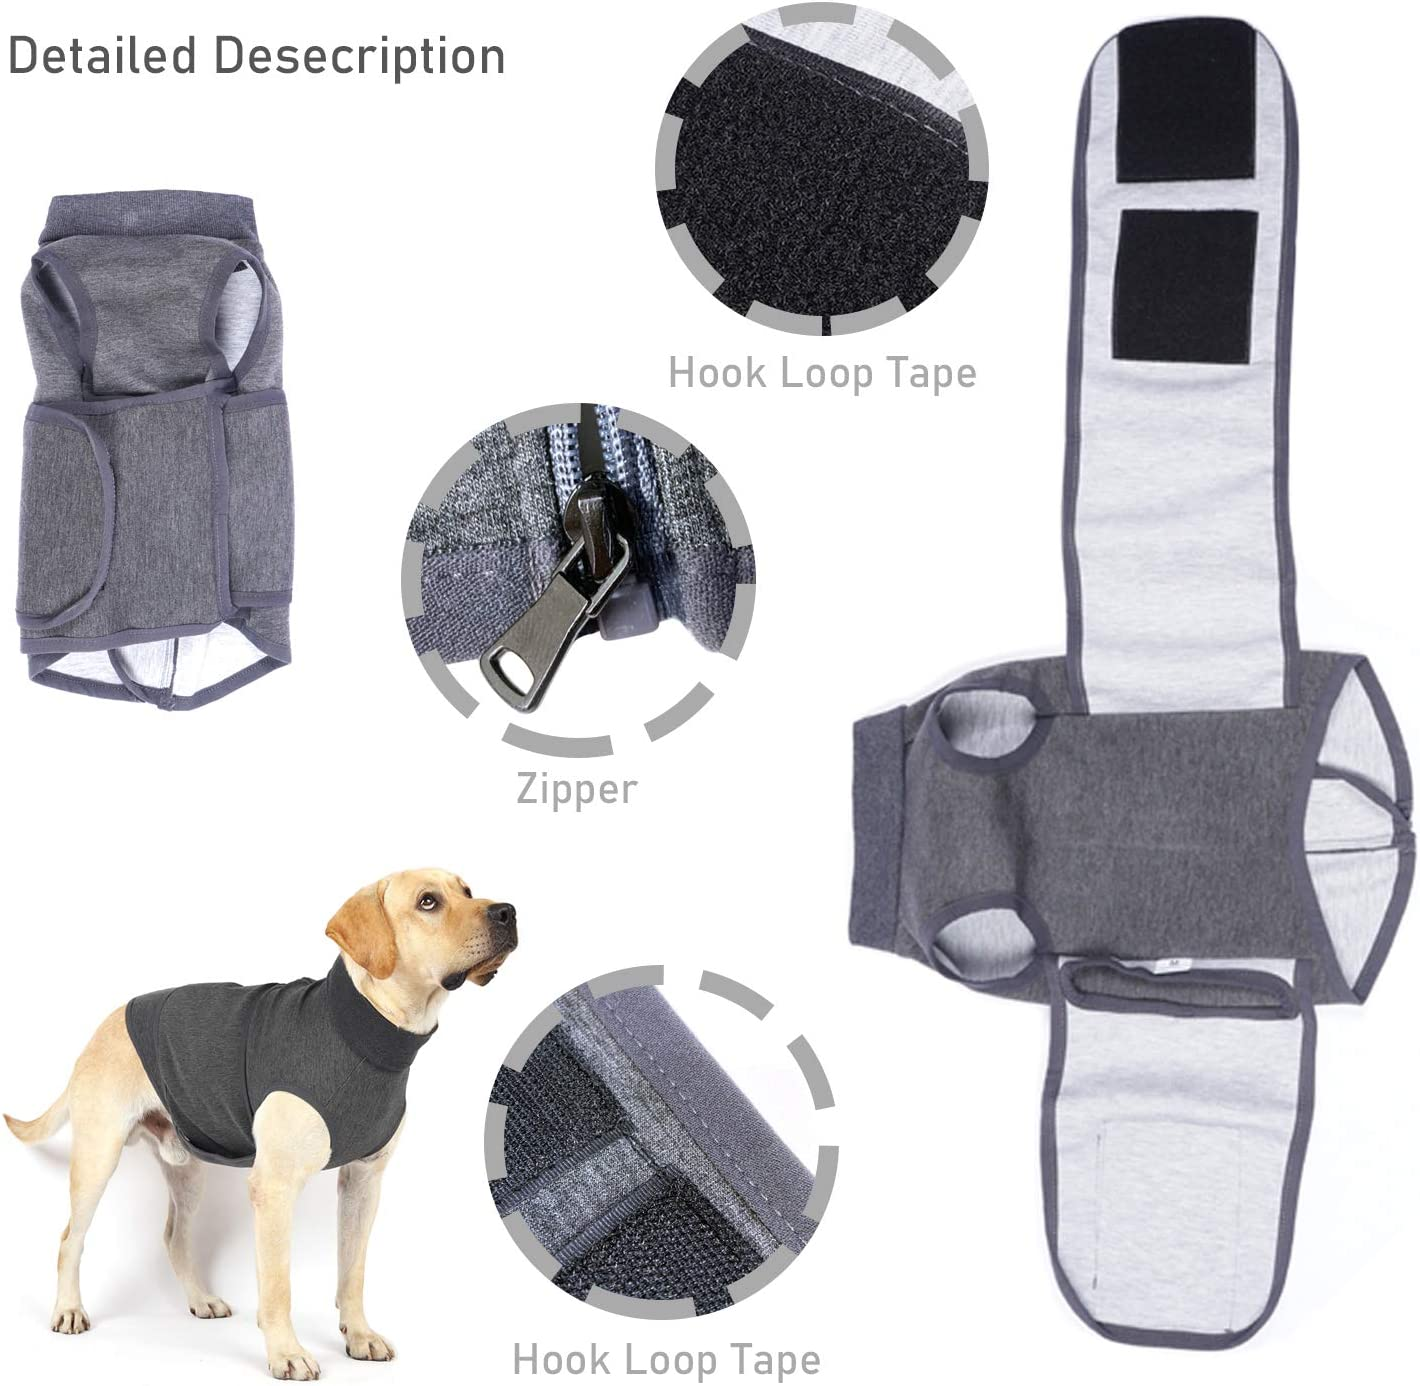 S Dog Anxiety Jacket Calming Coat Adjustable Wrap for Anxiety Stress Relief Lightweight Vest Used to Treat Scared Caused by Thunder and Lightning and Fireworks in time to Maintain Calm and Comfort